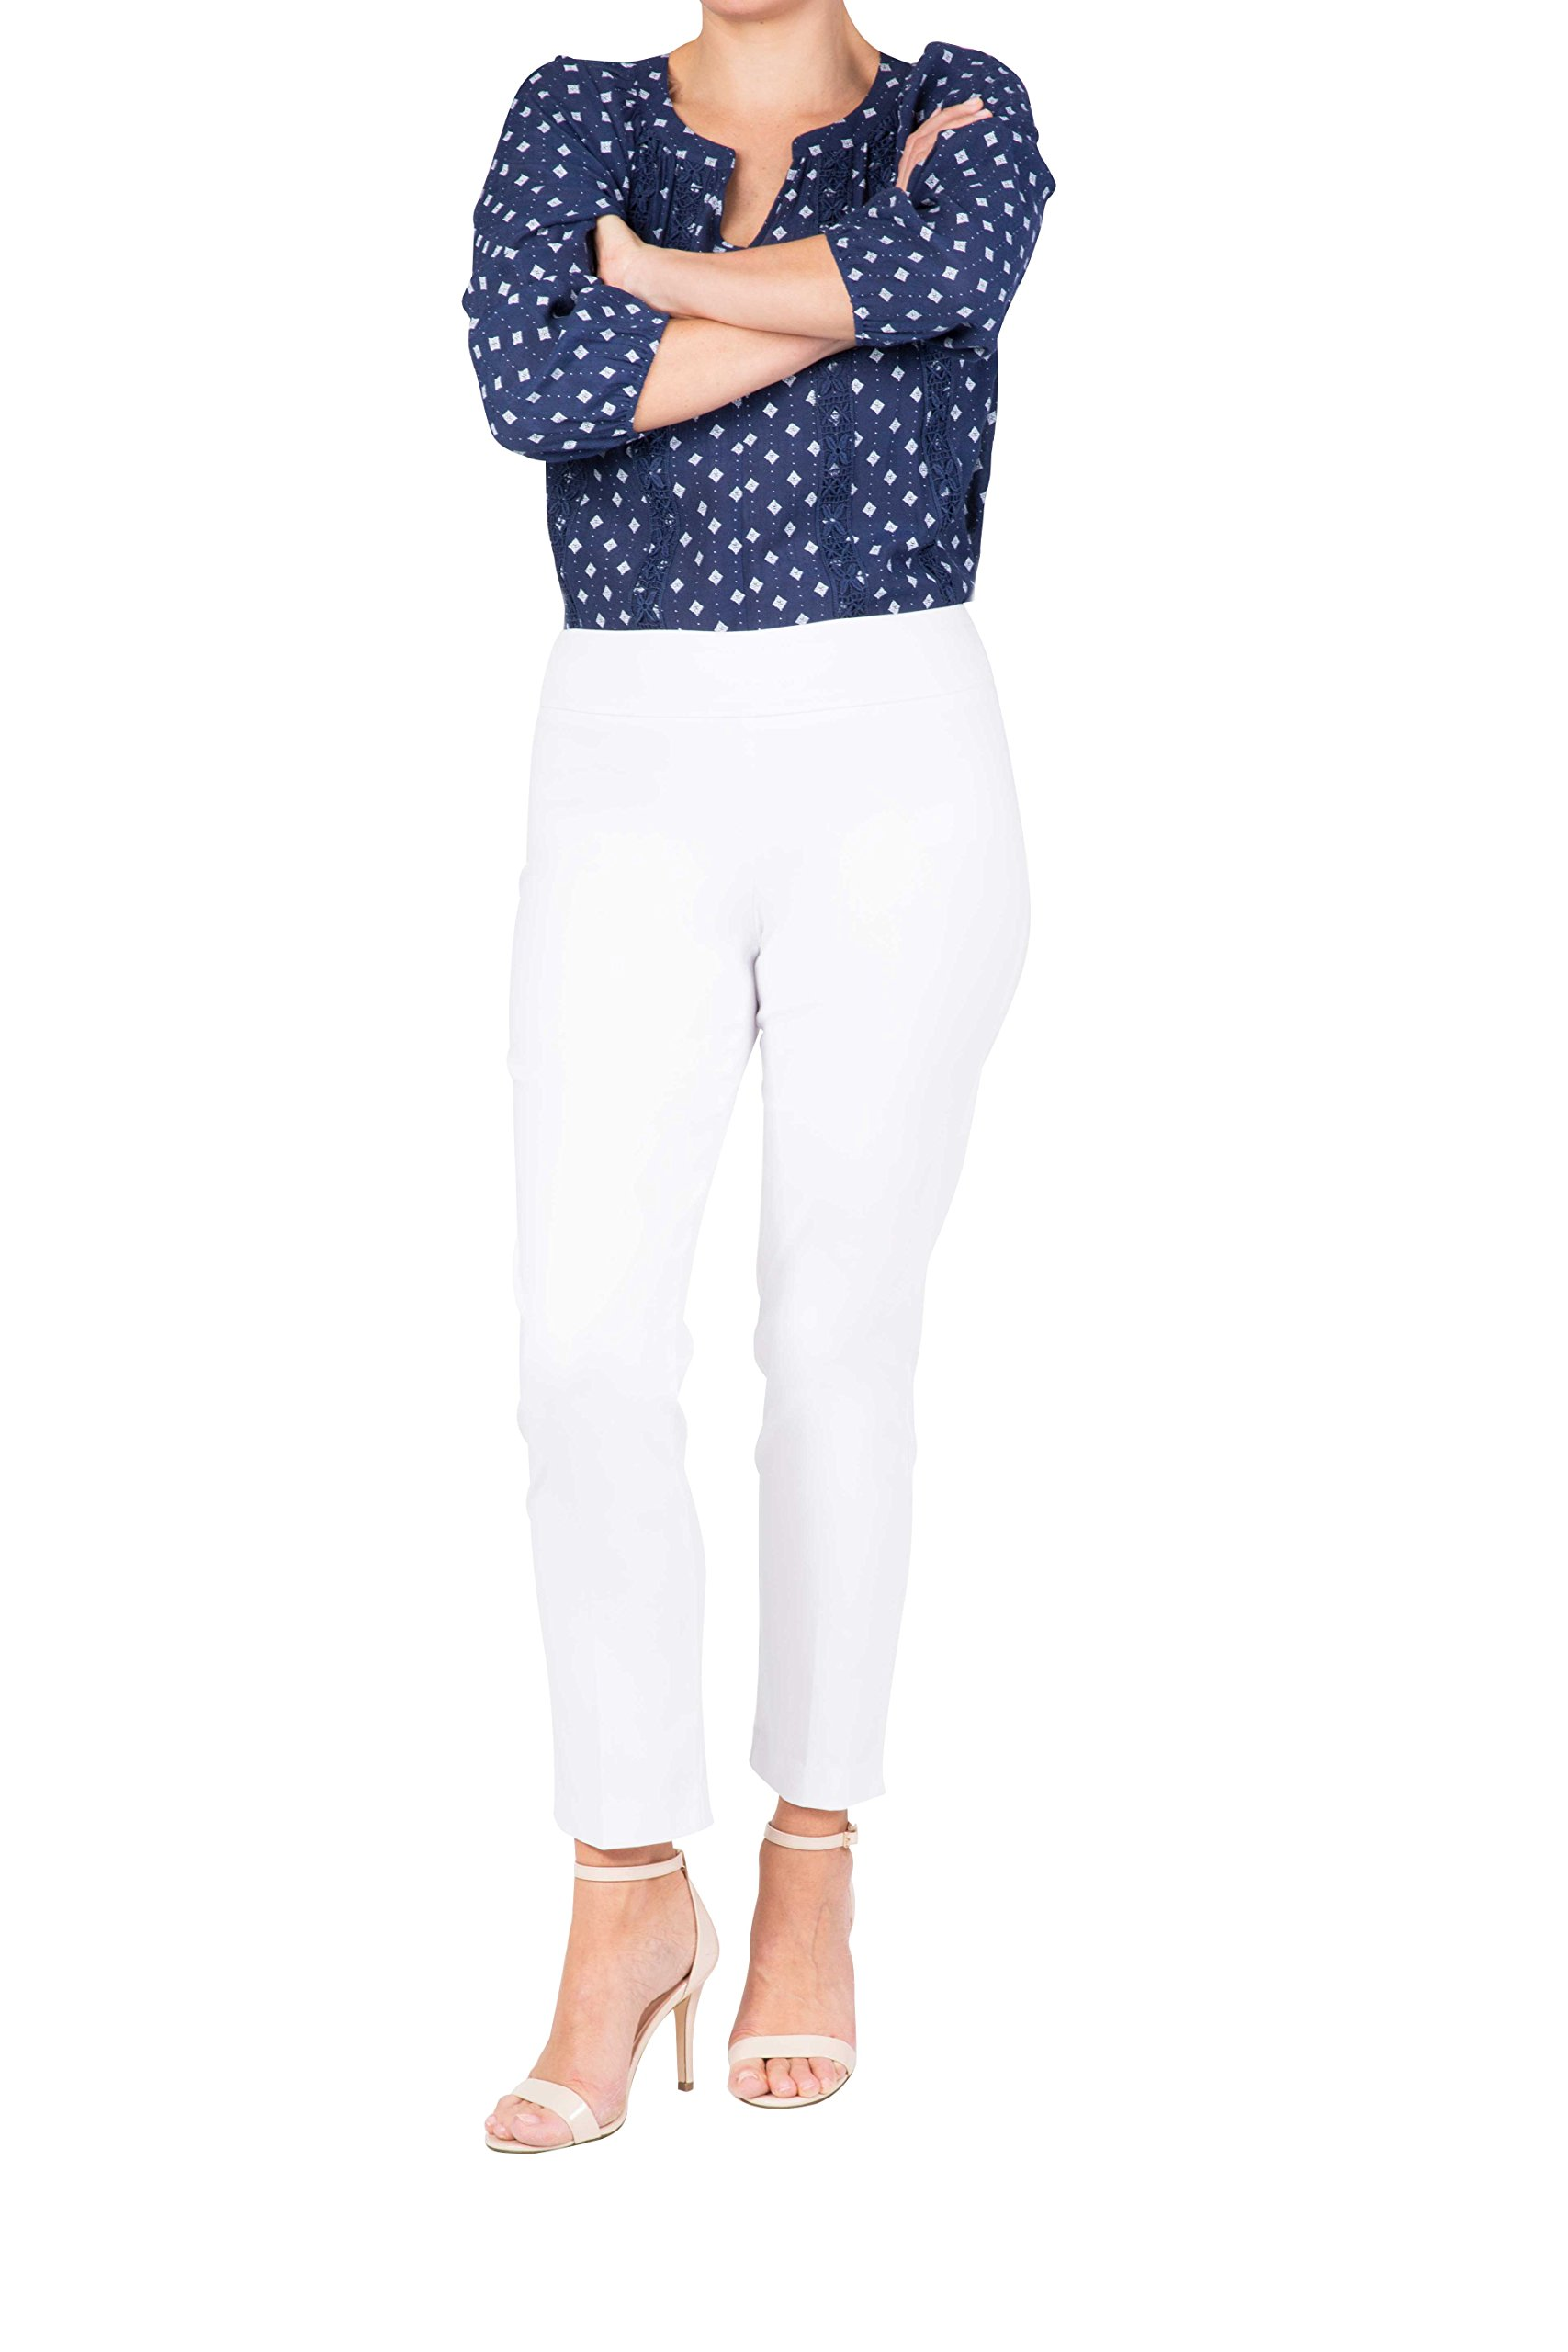 Fundamental Things Women's Pull On Comfort Slim Ankle Pant with Tummy Control, White, Size 8